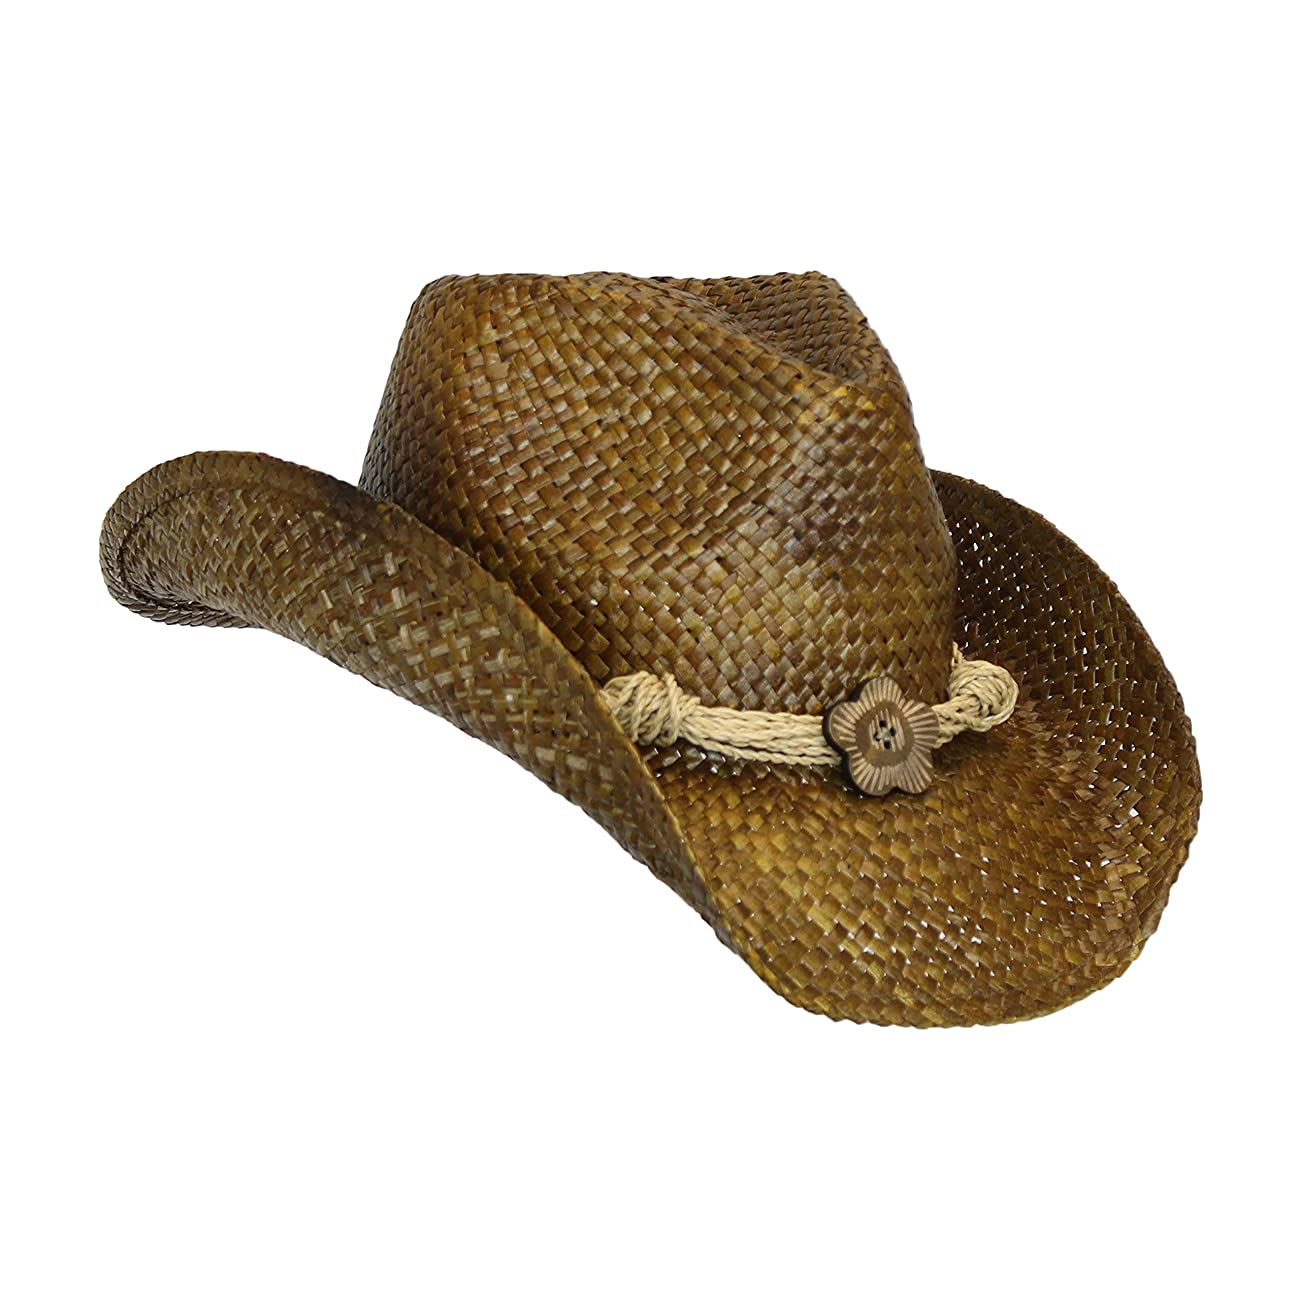 Western Seagrass Straw Cowboy Hat – Cute Vintage Cowgirl Hat w/ Flower 0